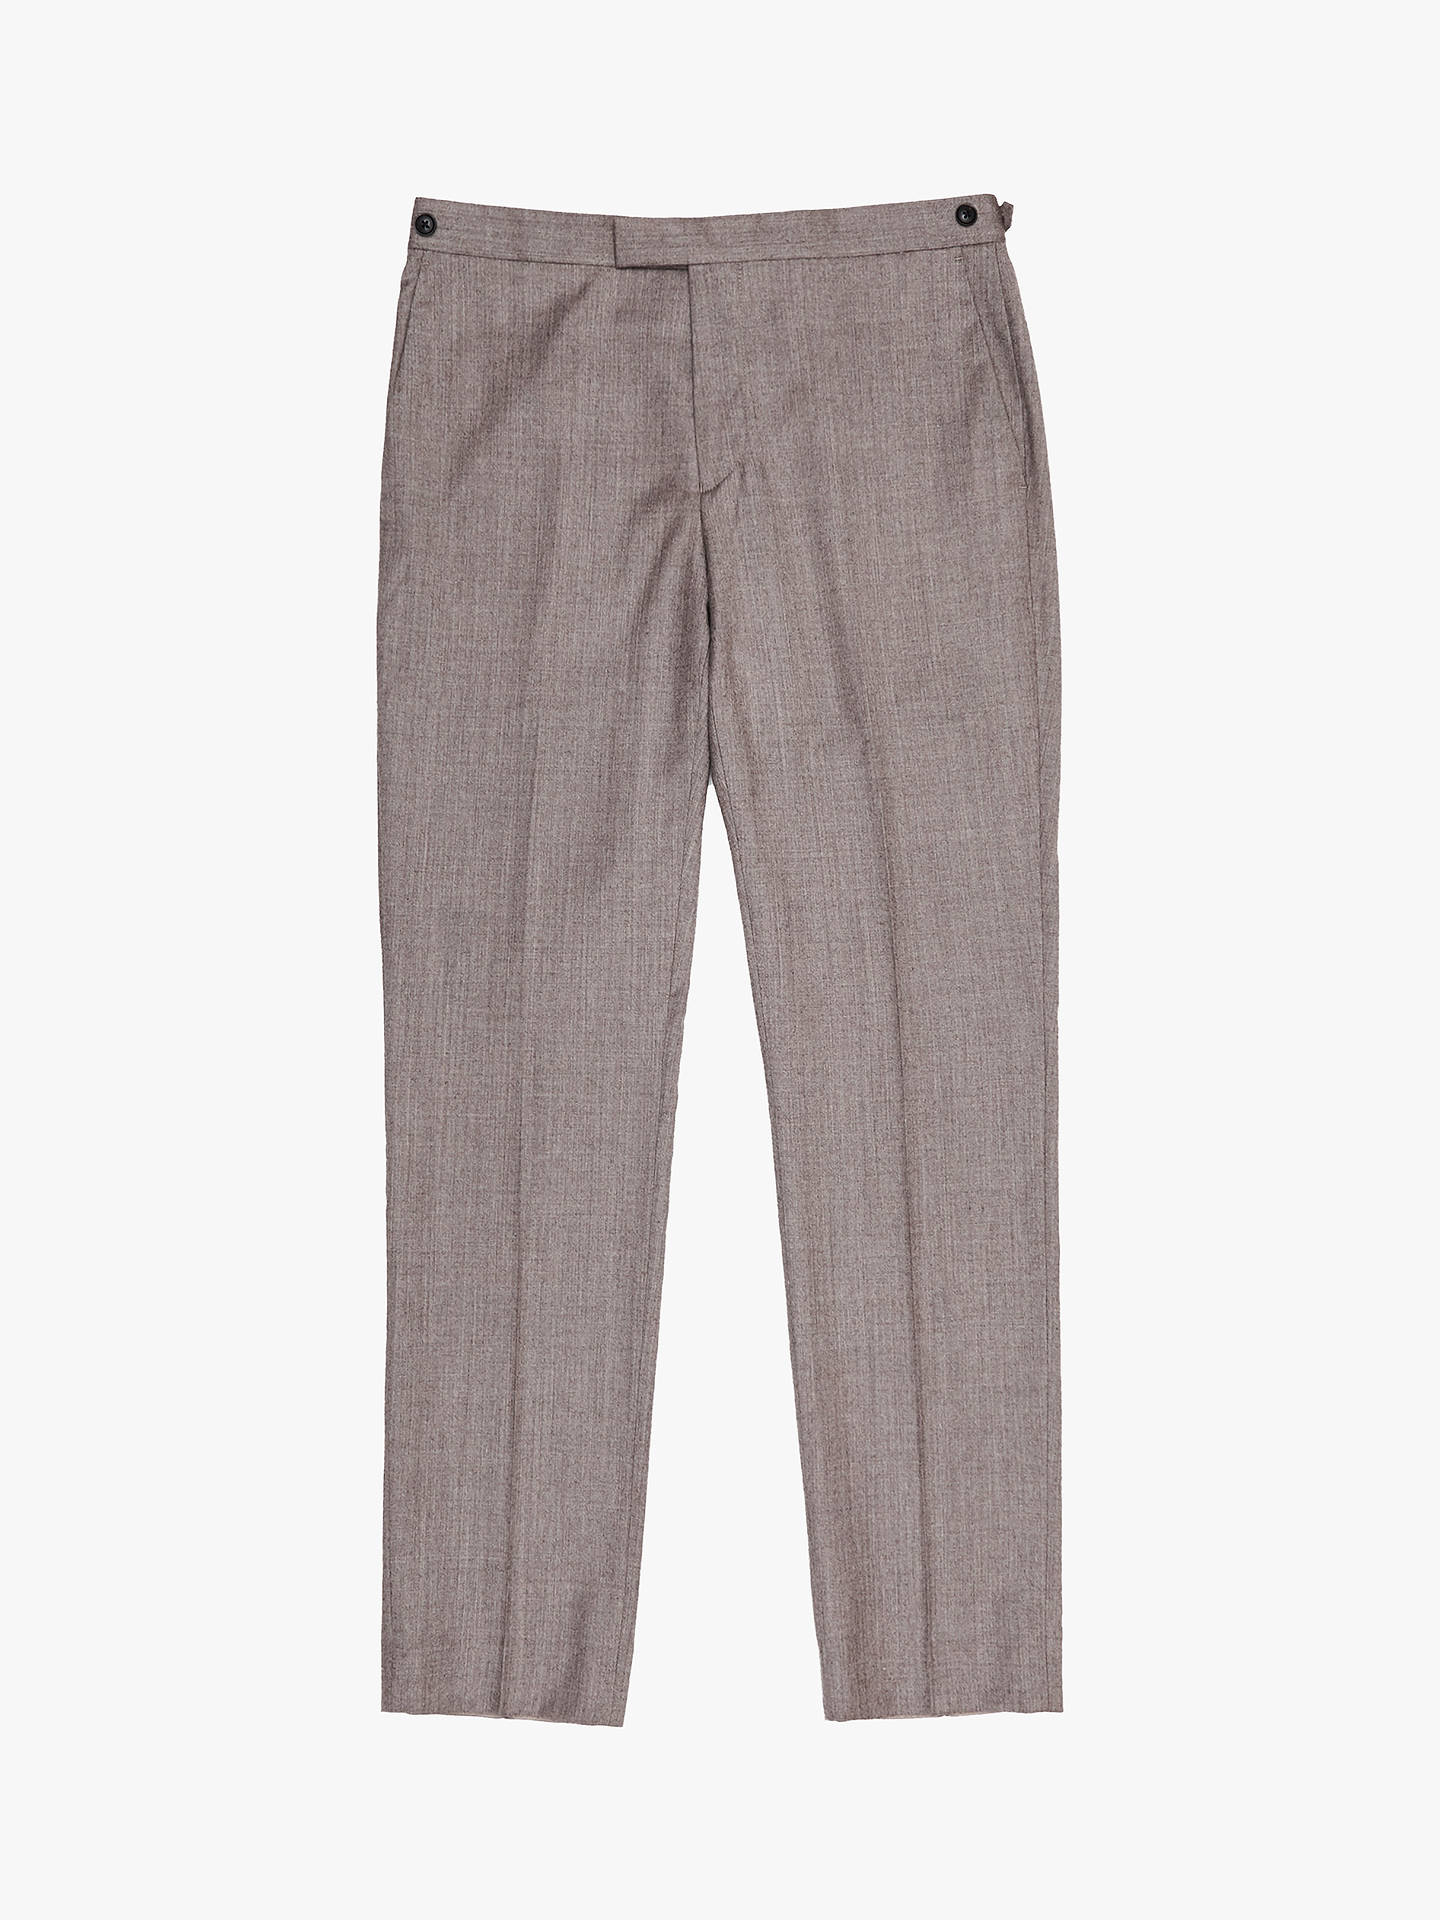 BuyReiss Welder Slim Fit Wool Suit Trousers, Taupe, 30R Online at johnlewis.com